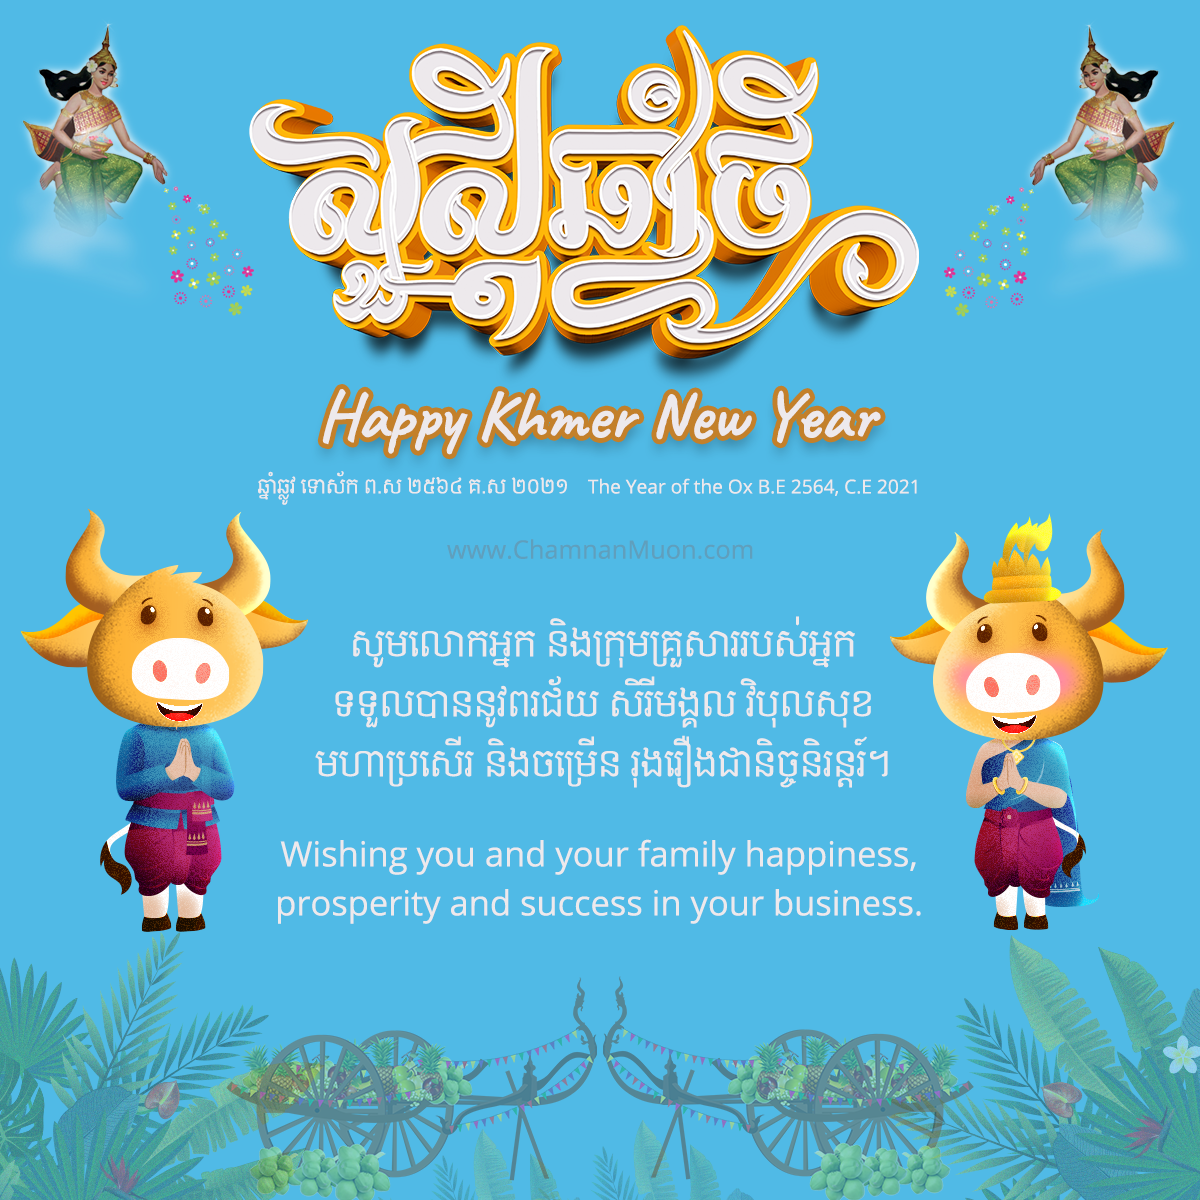 Khmer New Year 2021 [Greeting Card]